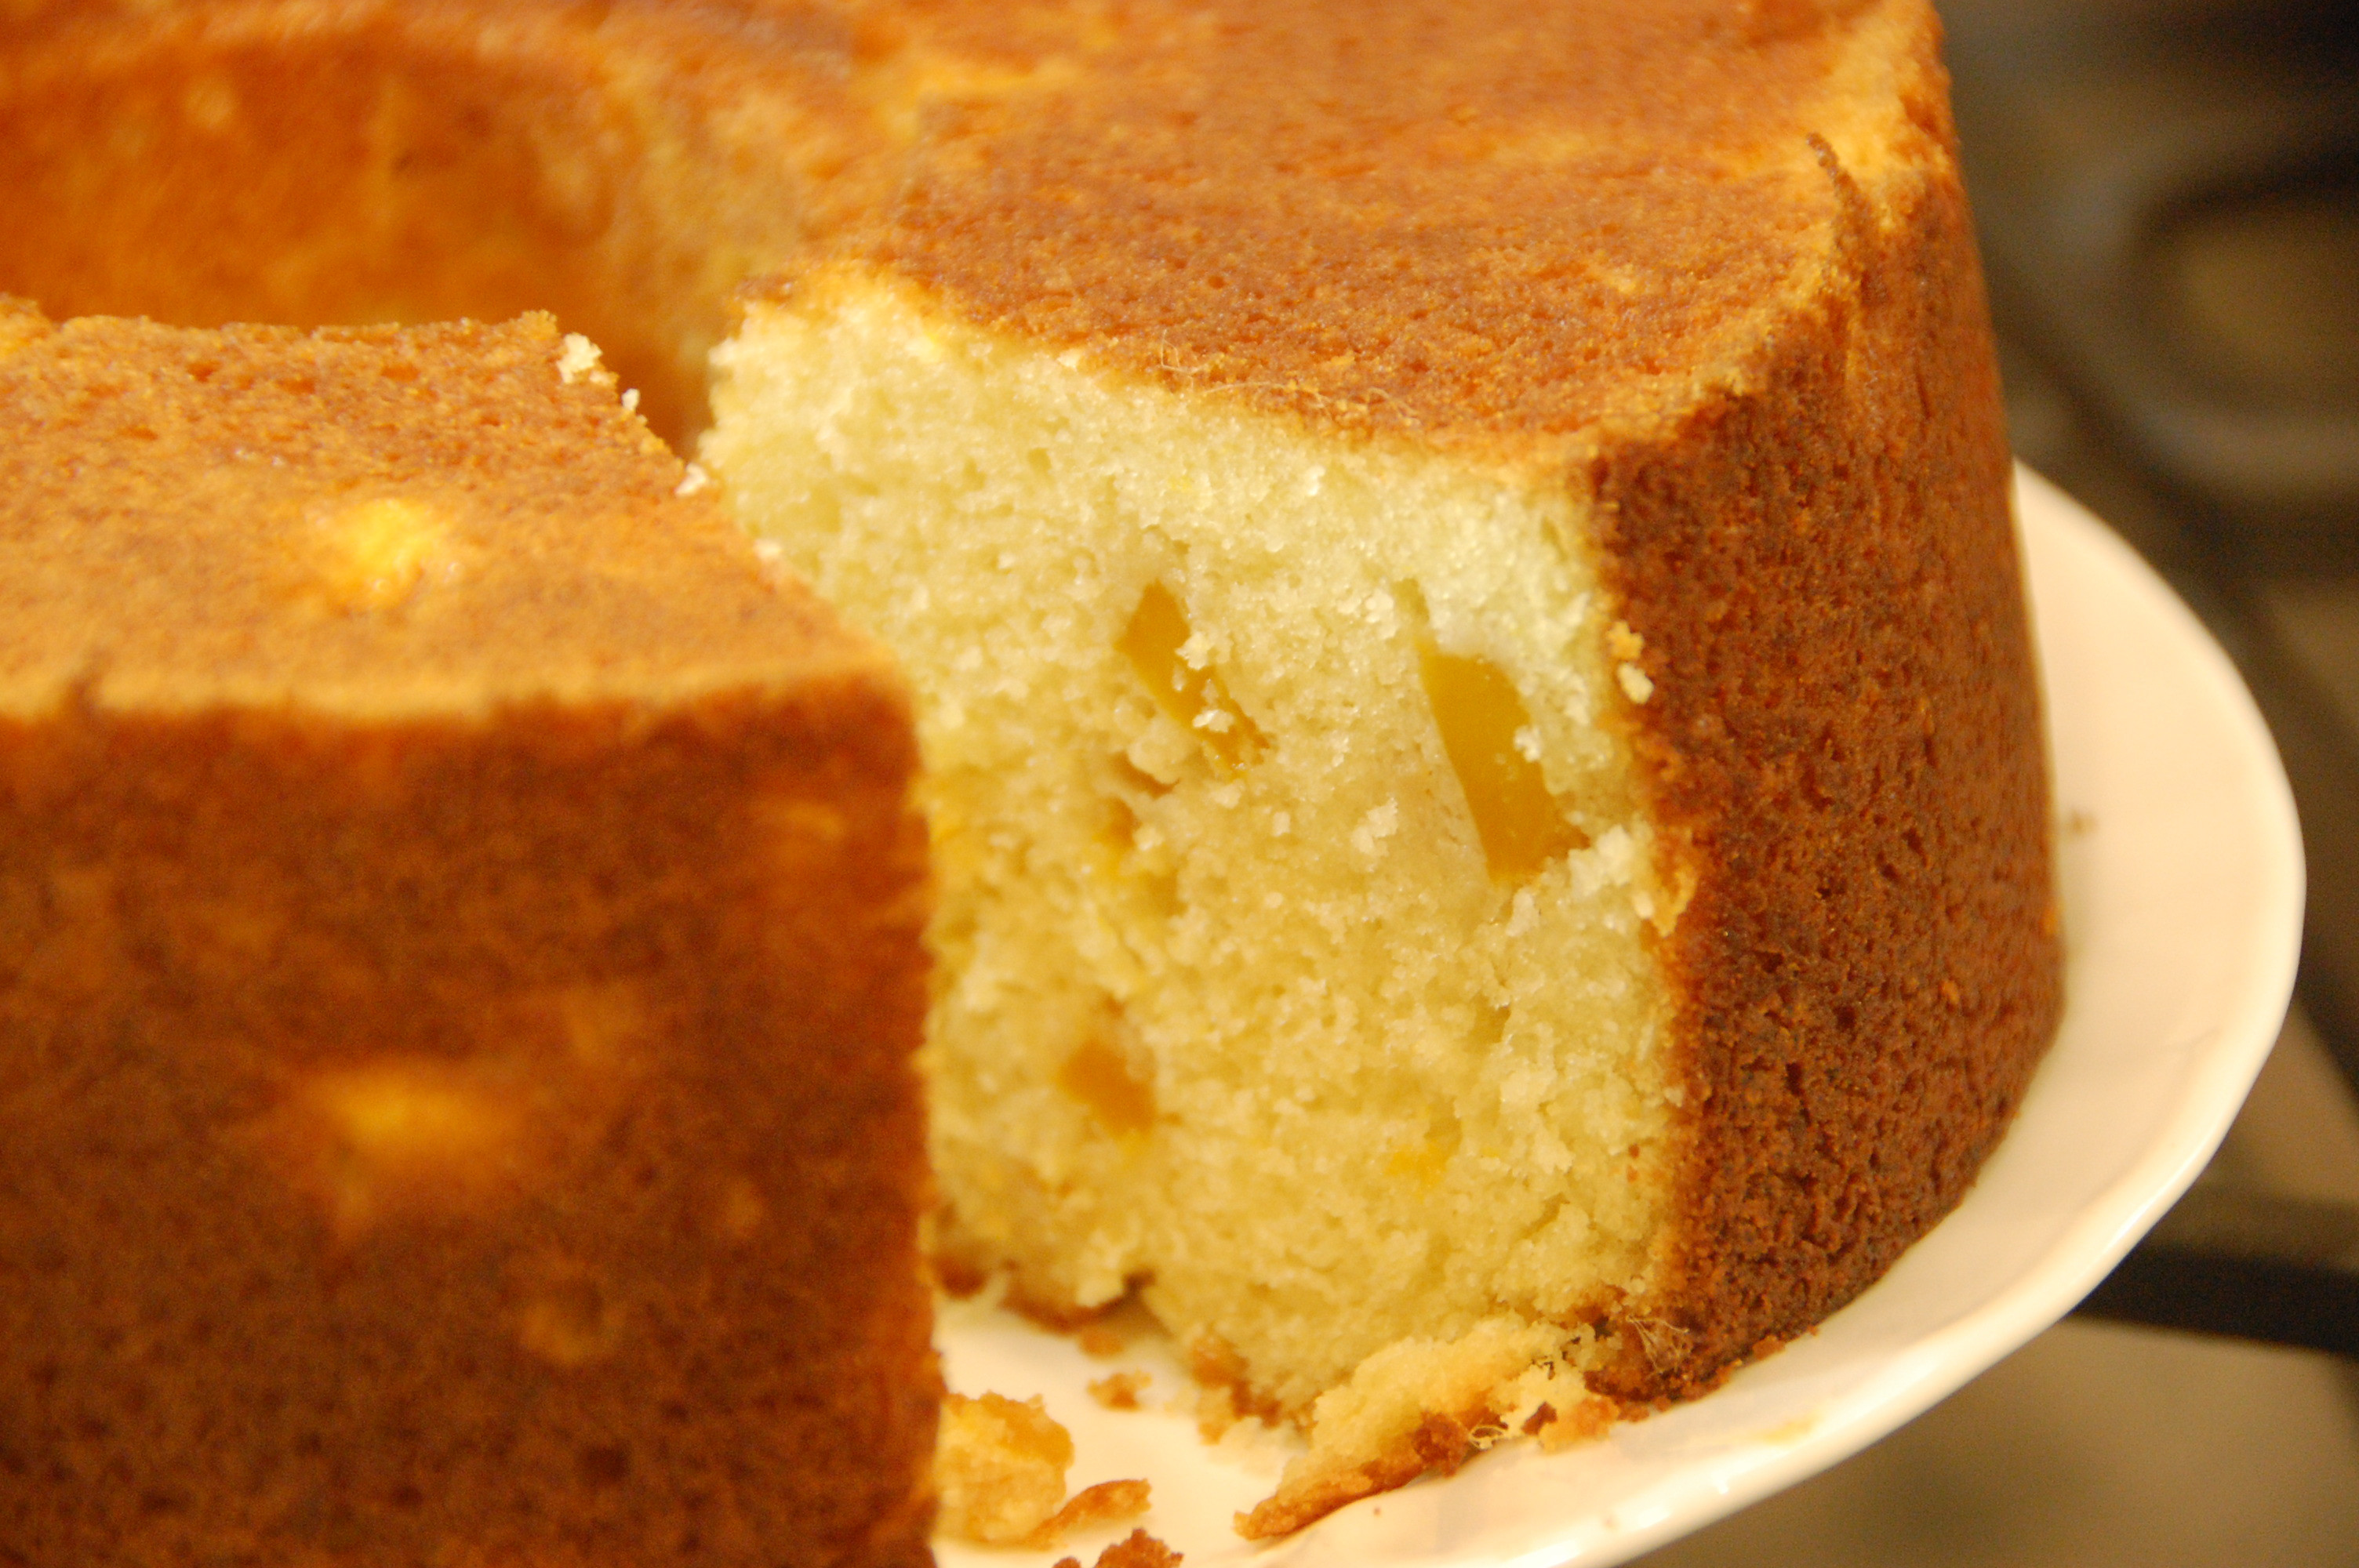 Butter Cake Recipes  Mango Butter Cake Adding fruit to a basic butter cake